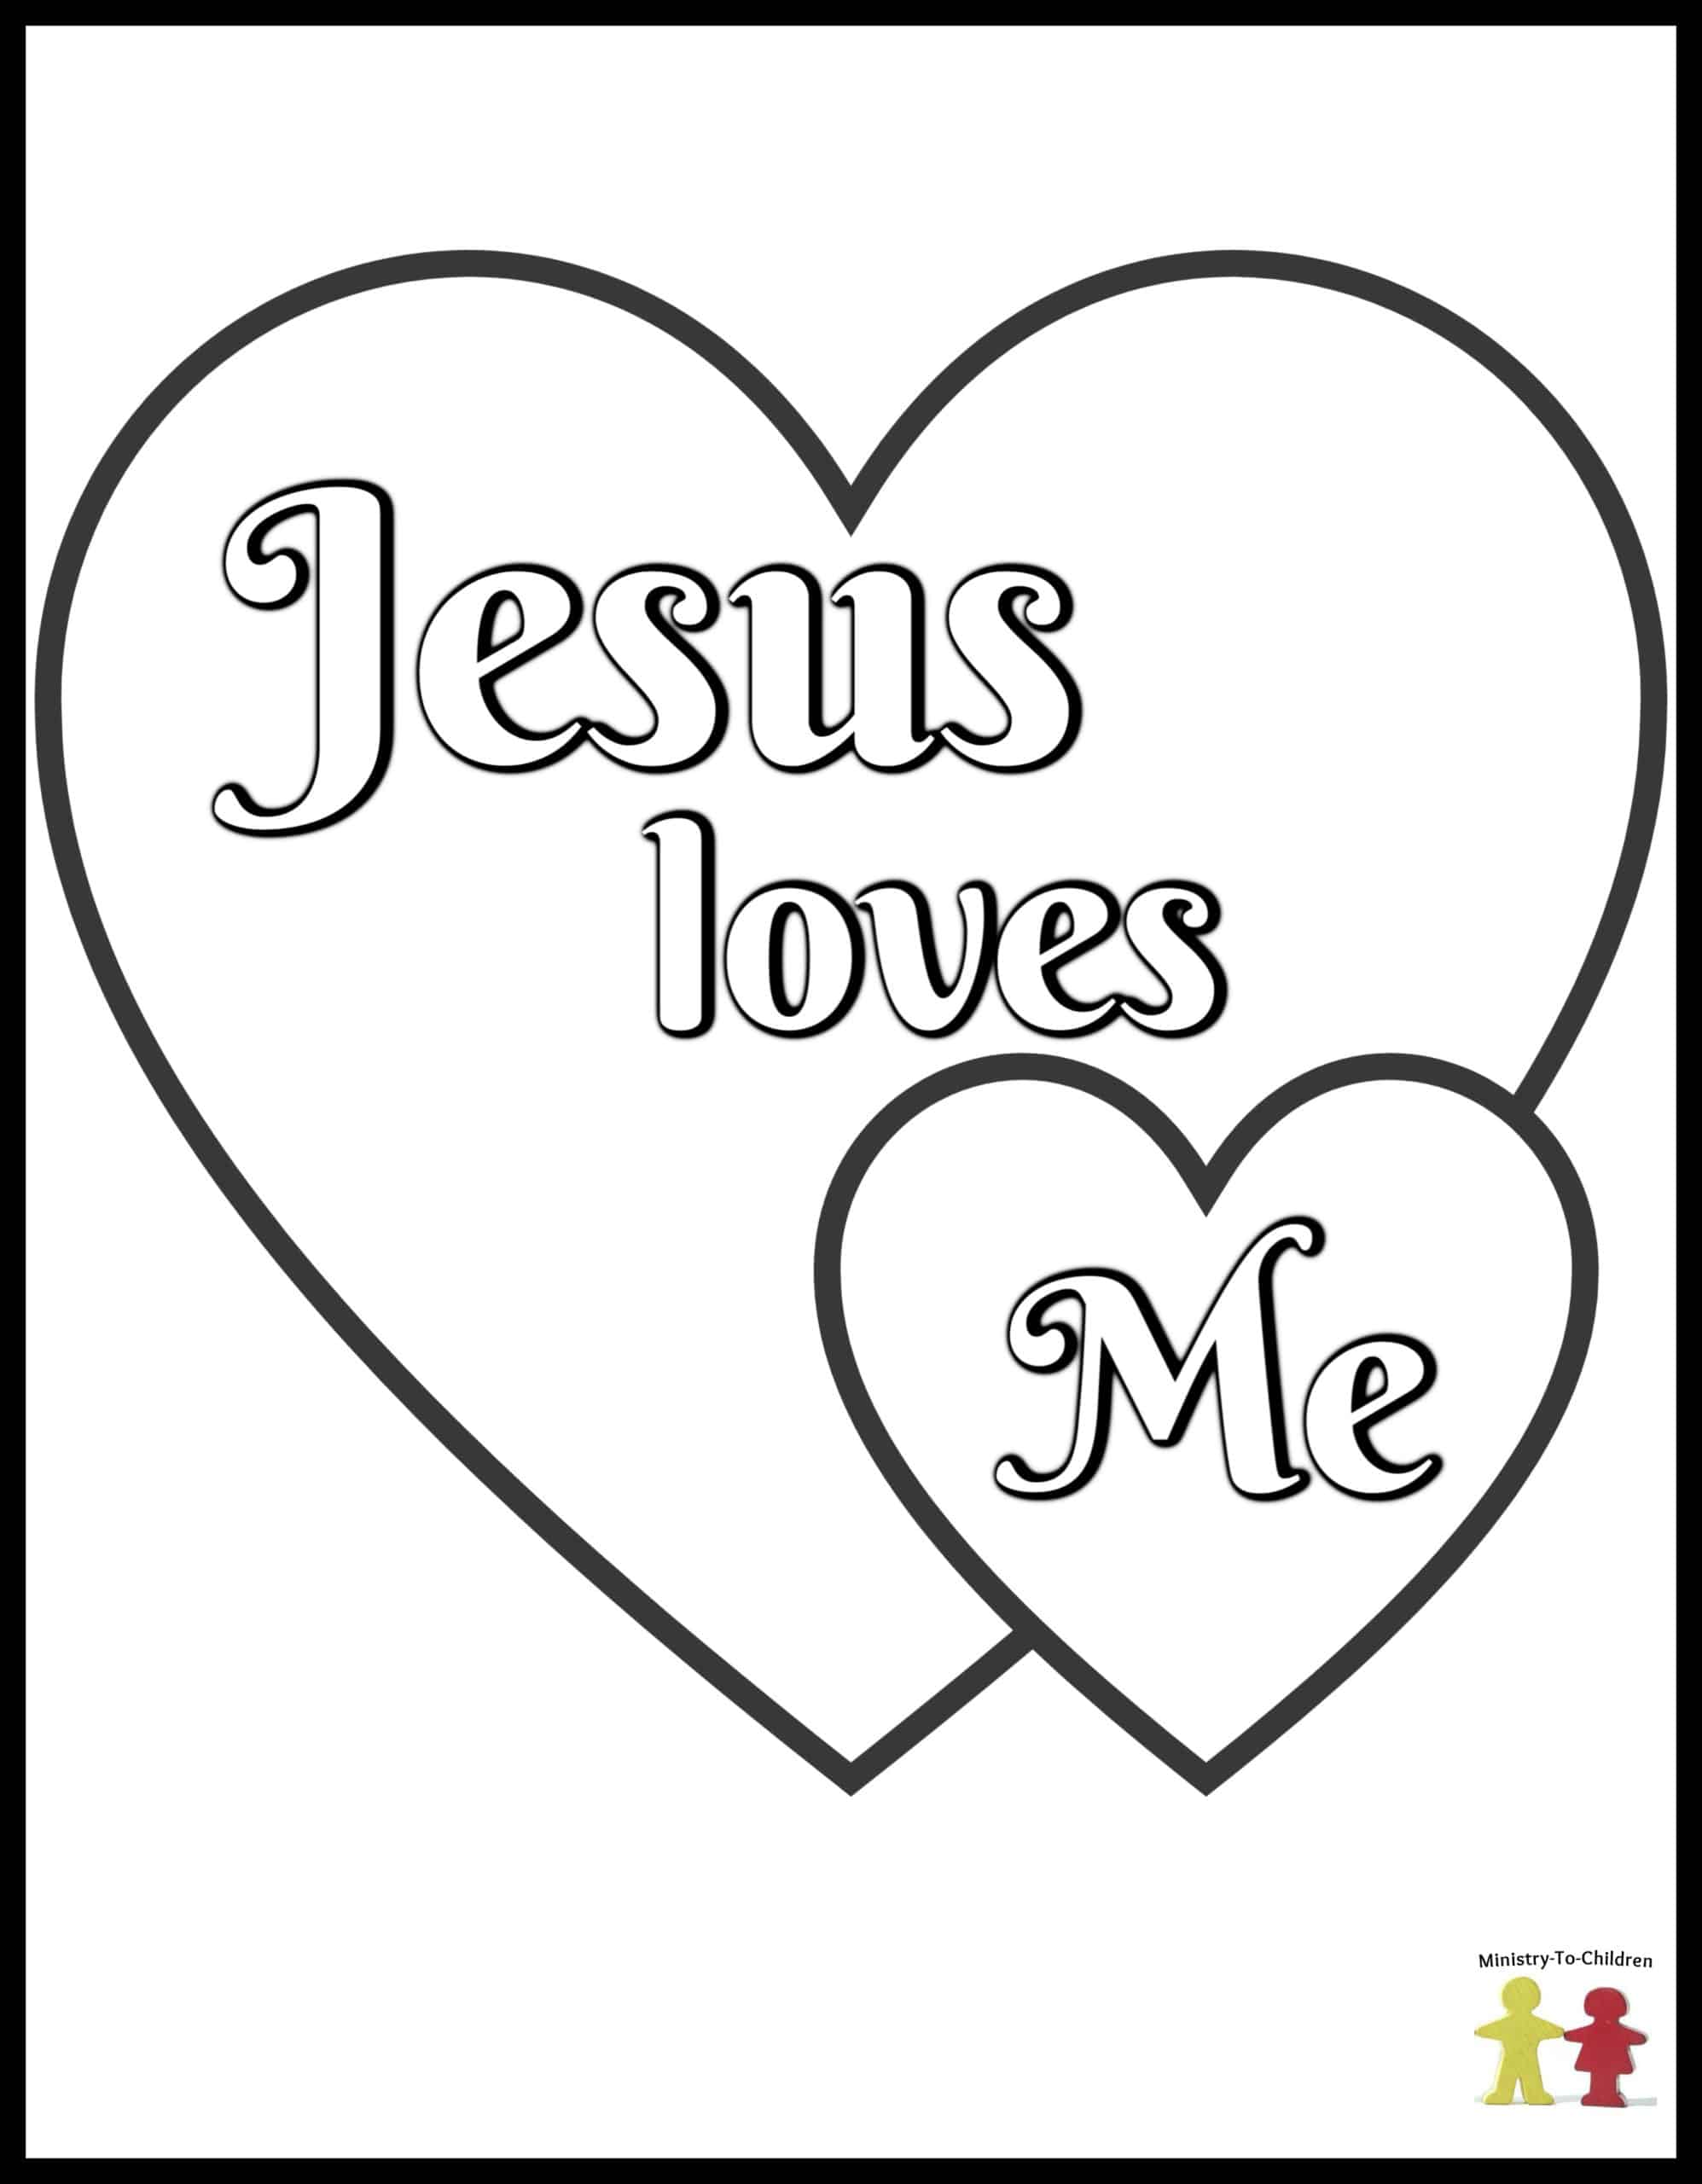 preschool christian coloring pages orthodox christian coloring pages sunday school coloring preschool coloring pages christian